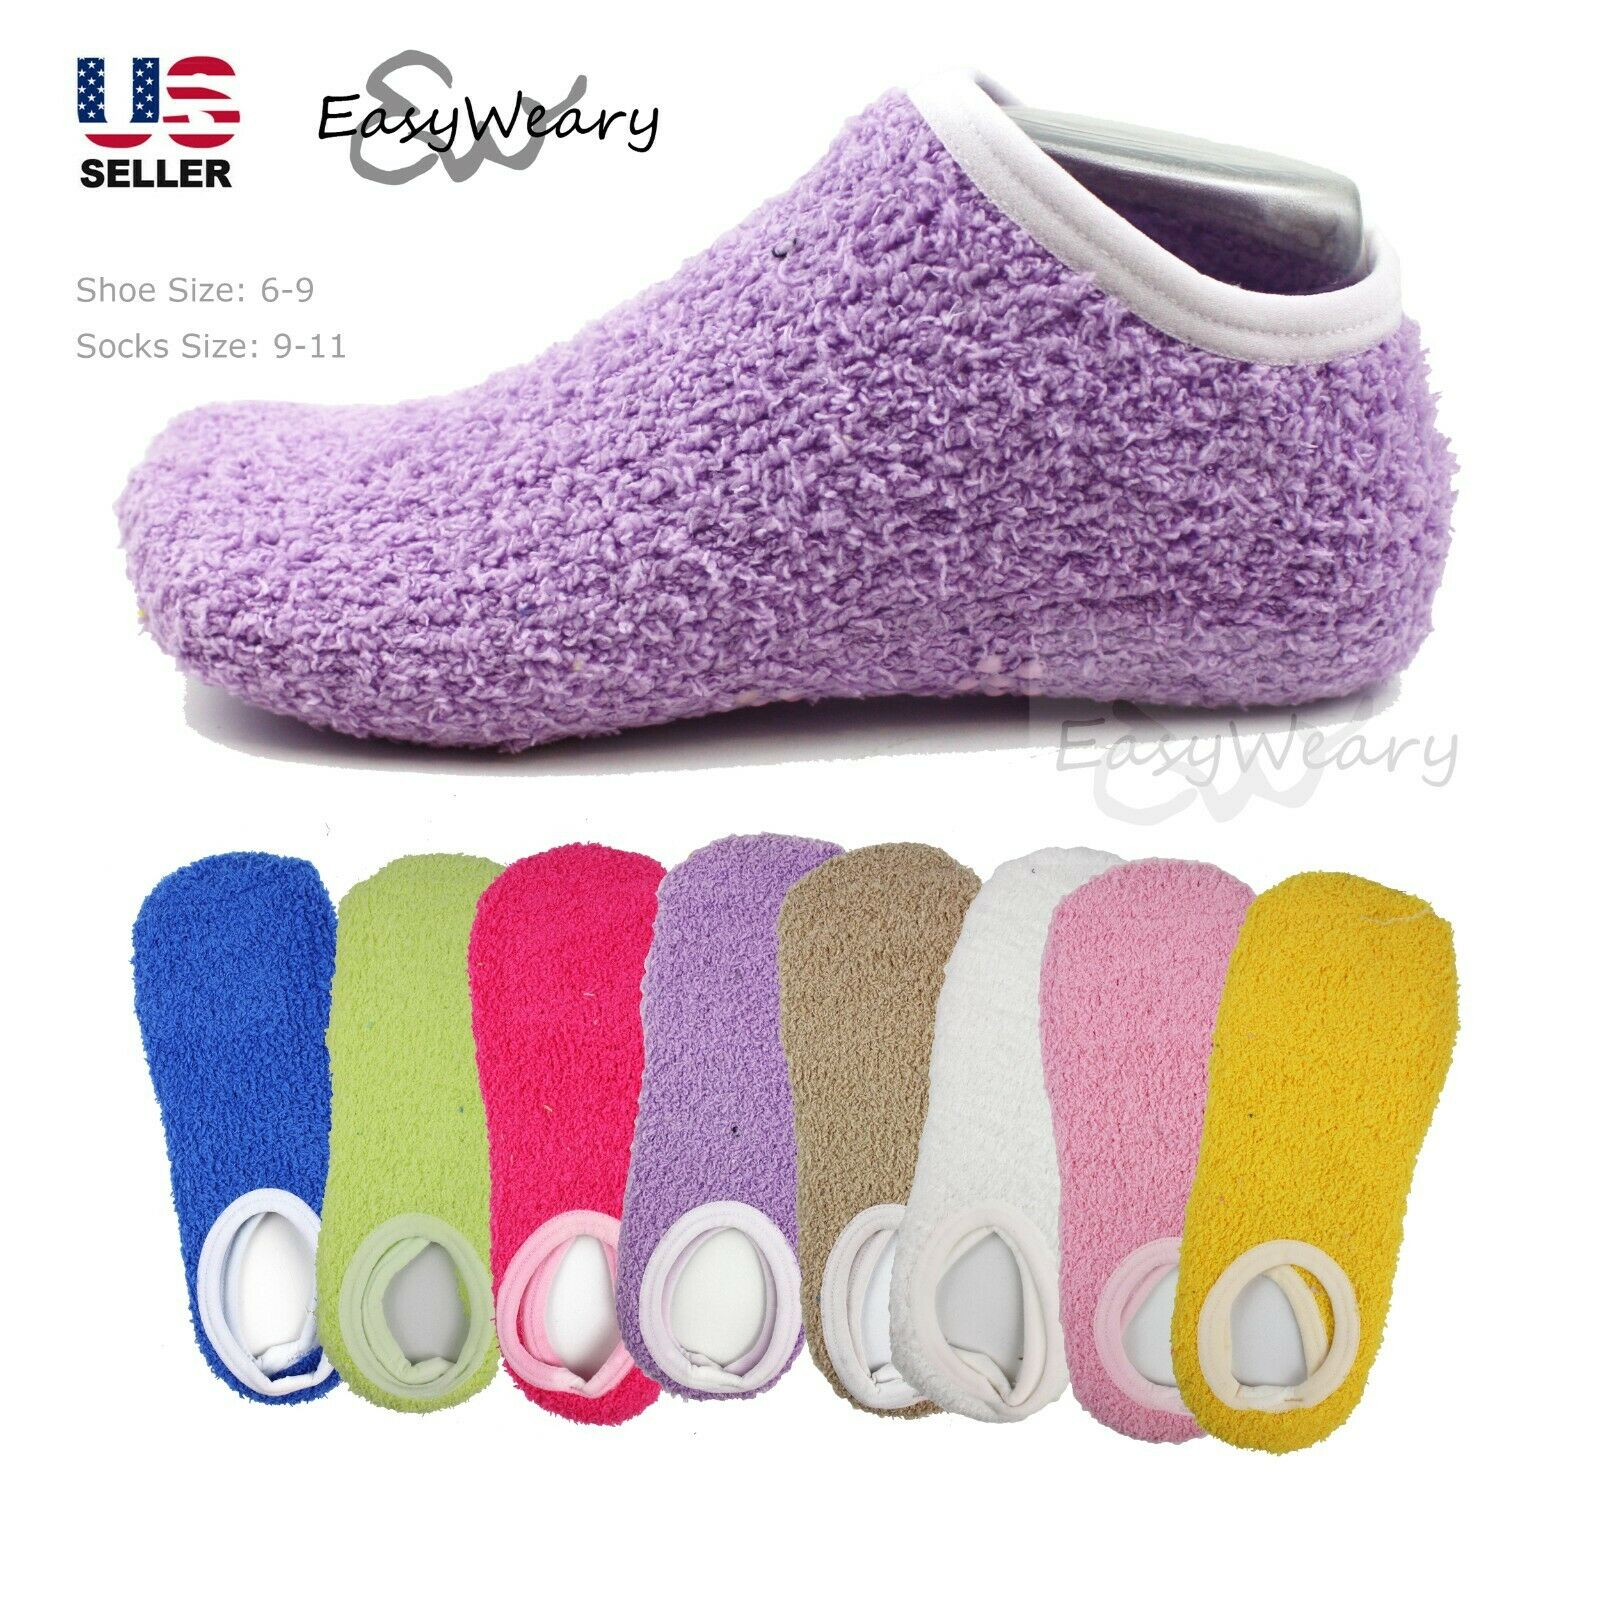 Lot 5 Pairs Womens Fuzzy Warm Soft Cozy Slippers Socks Non-S